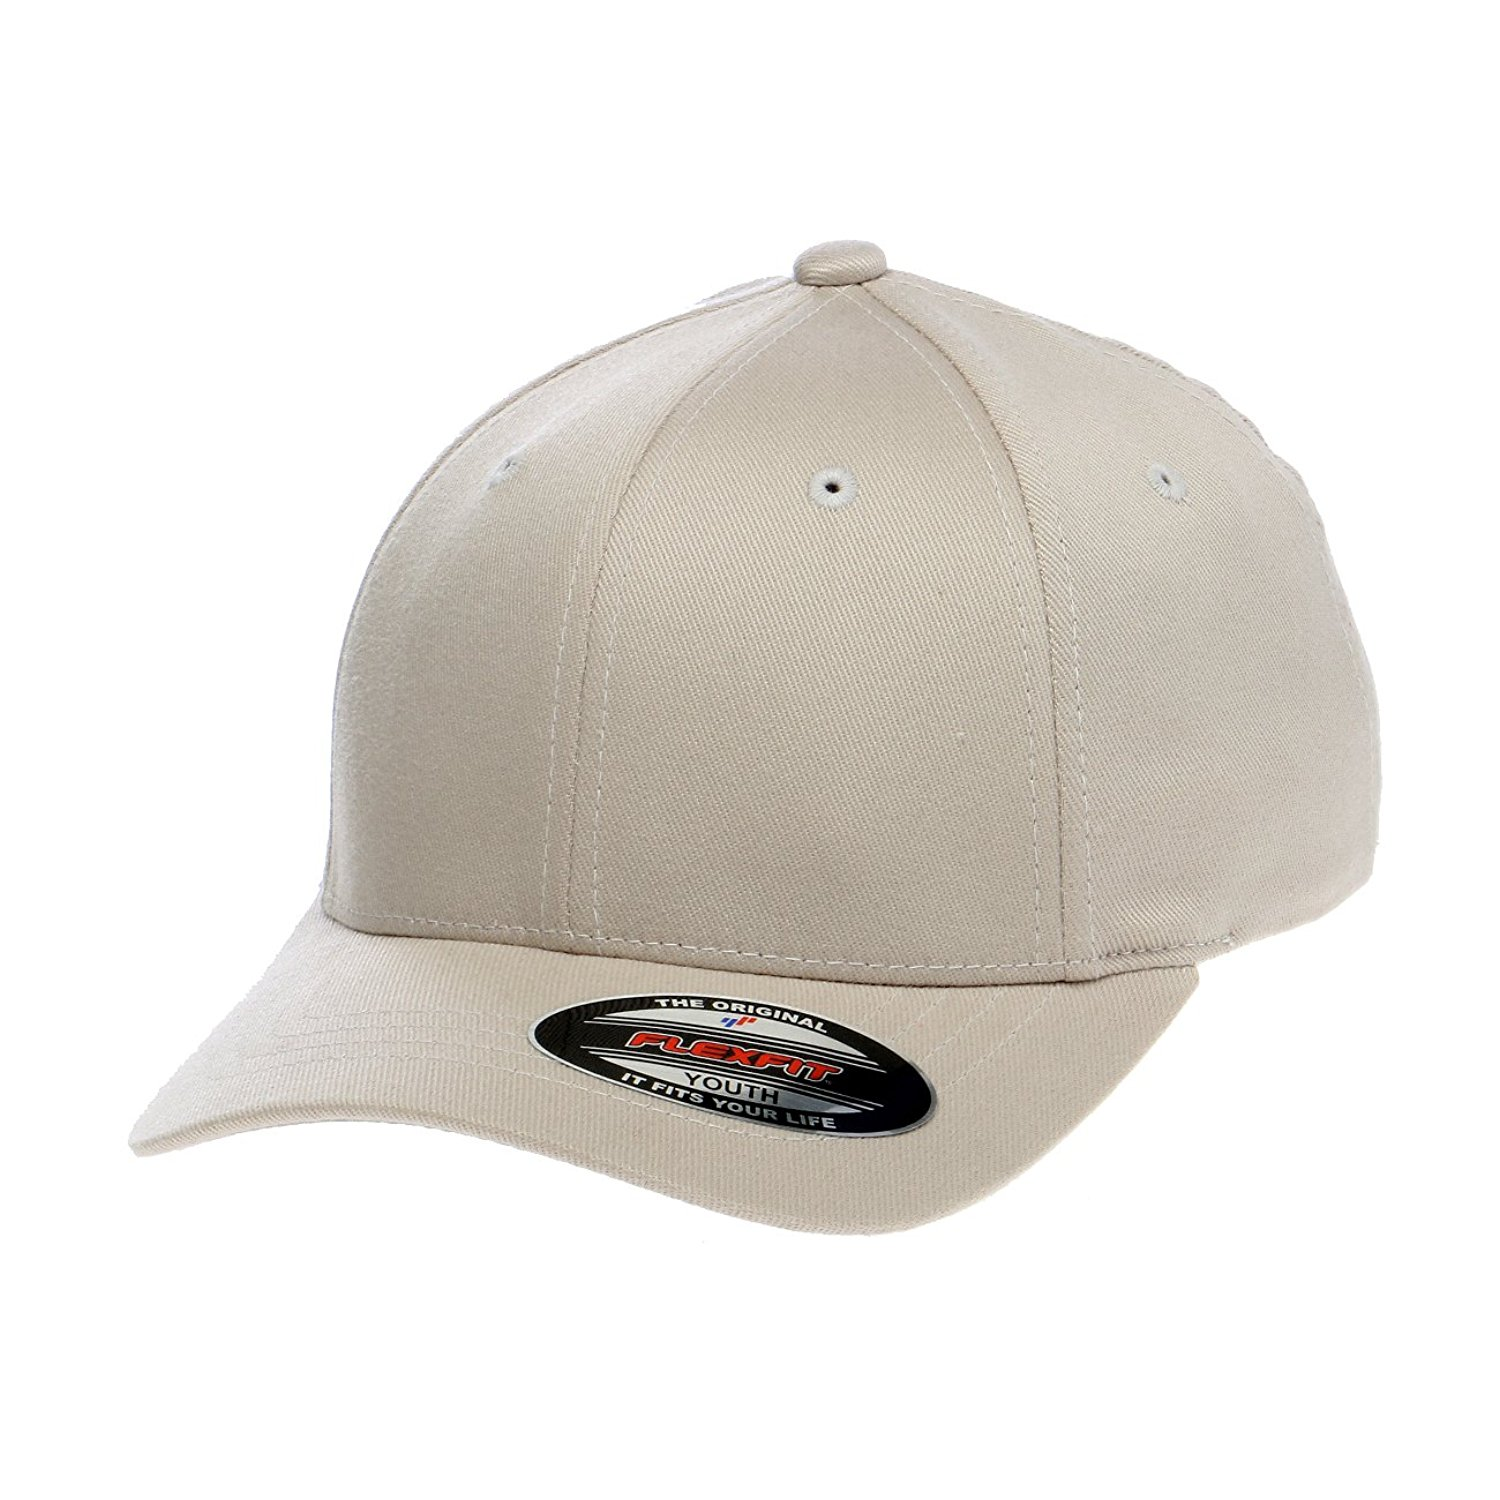 2b0d18e1d Buy Premium Original Flexfit Wooly Combed Port Authority 6277 Cap ...